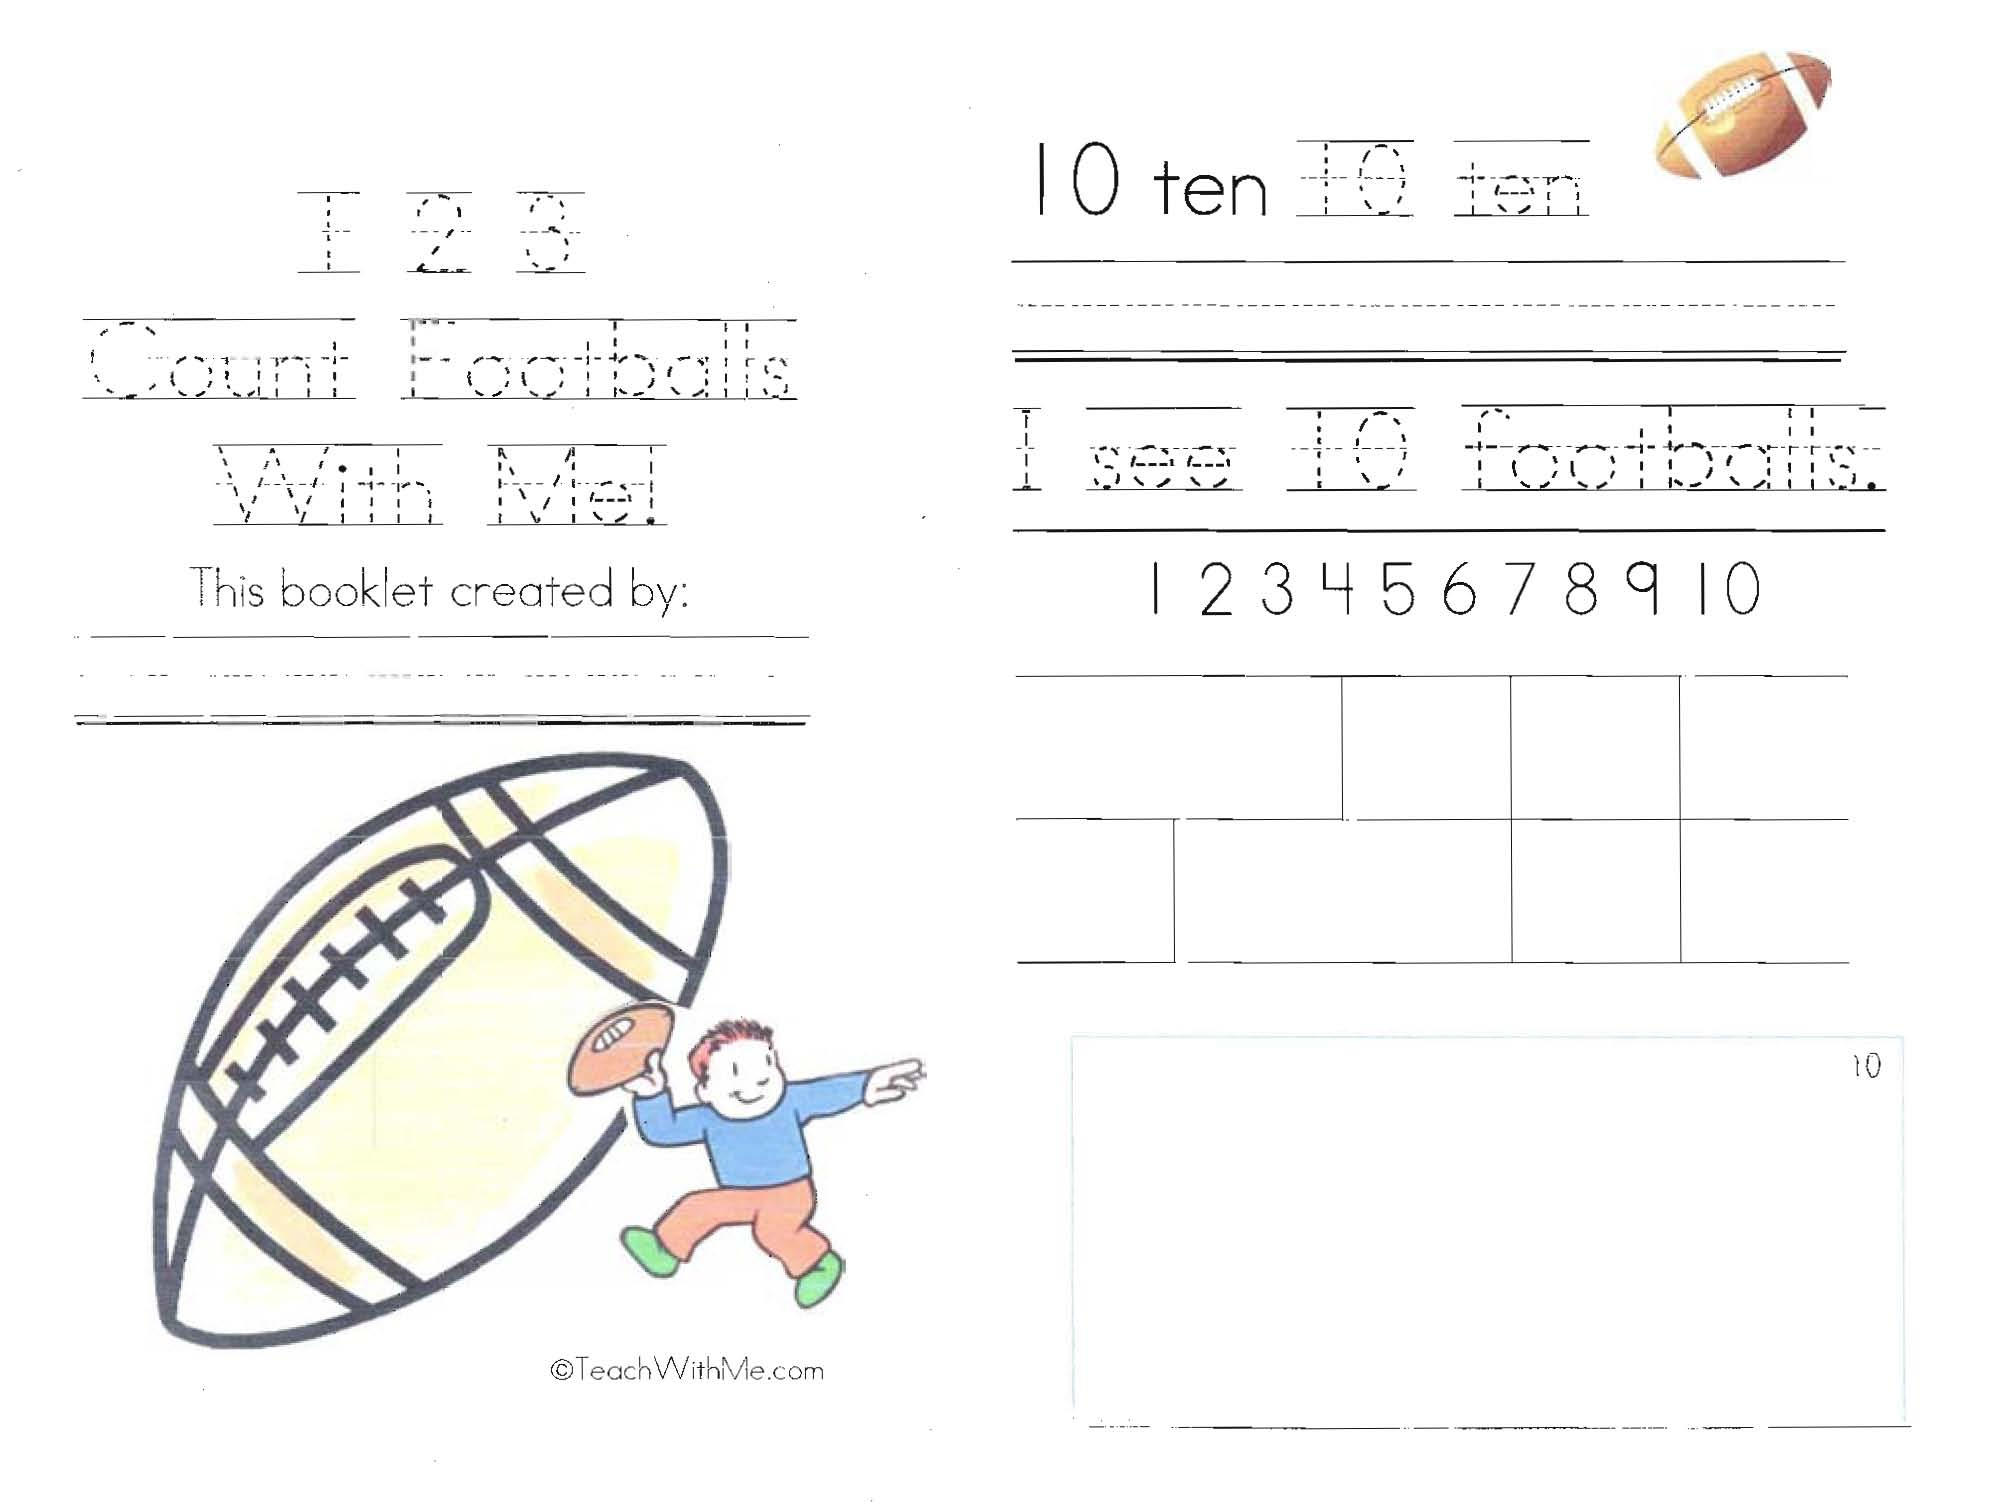 football activities, word family activities, football 10 frames, football-themed math games, football 10 frames easy reader, common core football, ick word family activities, all word family activities, word family cards, fall games, fall centers, daily 5 for fall, word work for fall, bingo games for word families, alphabetizing worksheets,